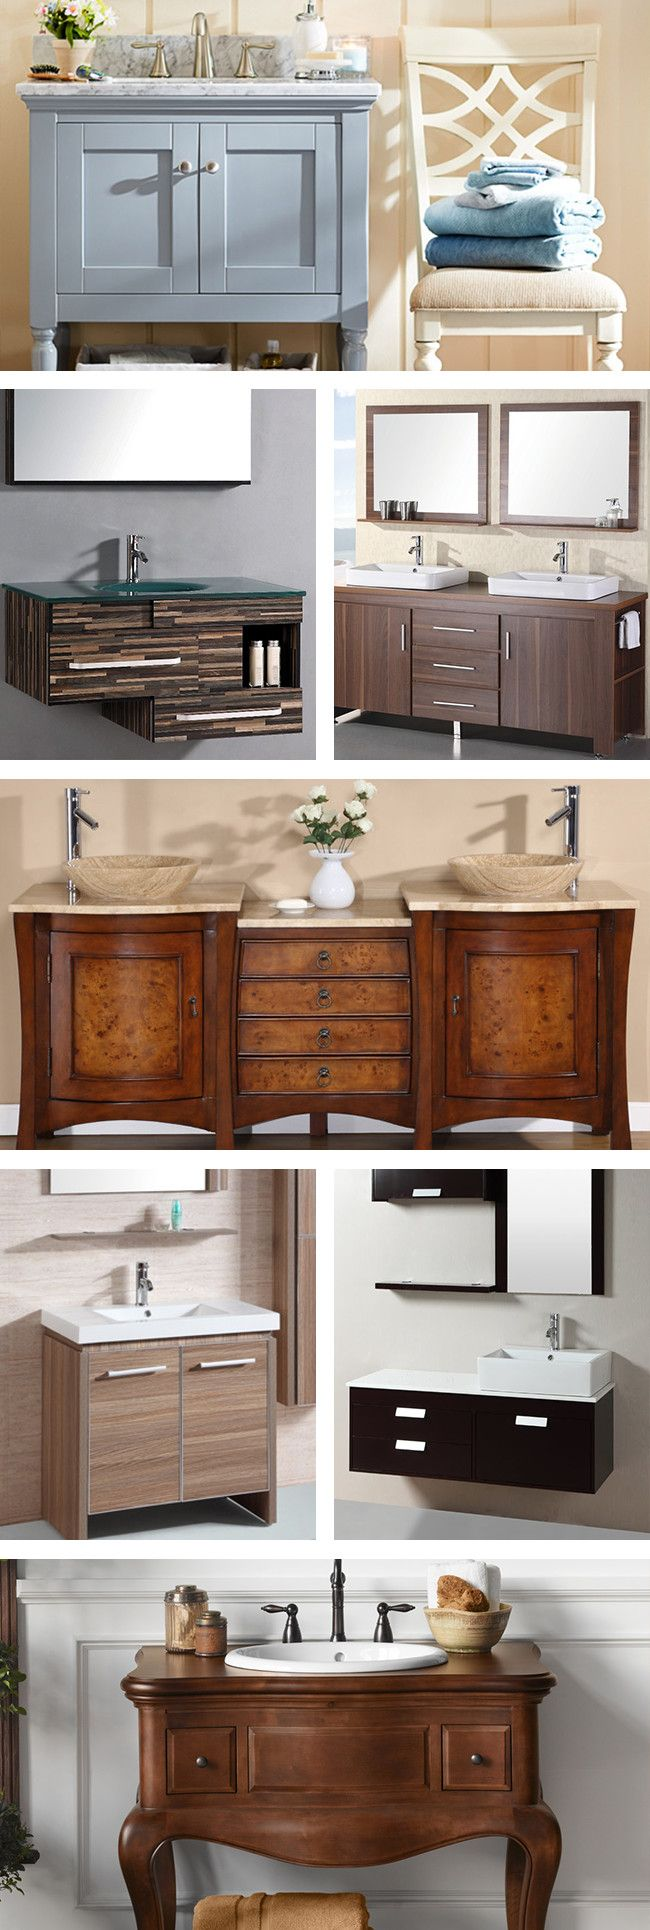 Purchasing A Bathroom Vanity For Your Home Can Help You Redesign Your Bathroom Space You